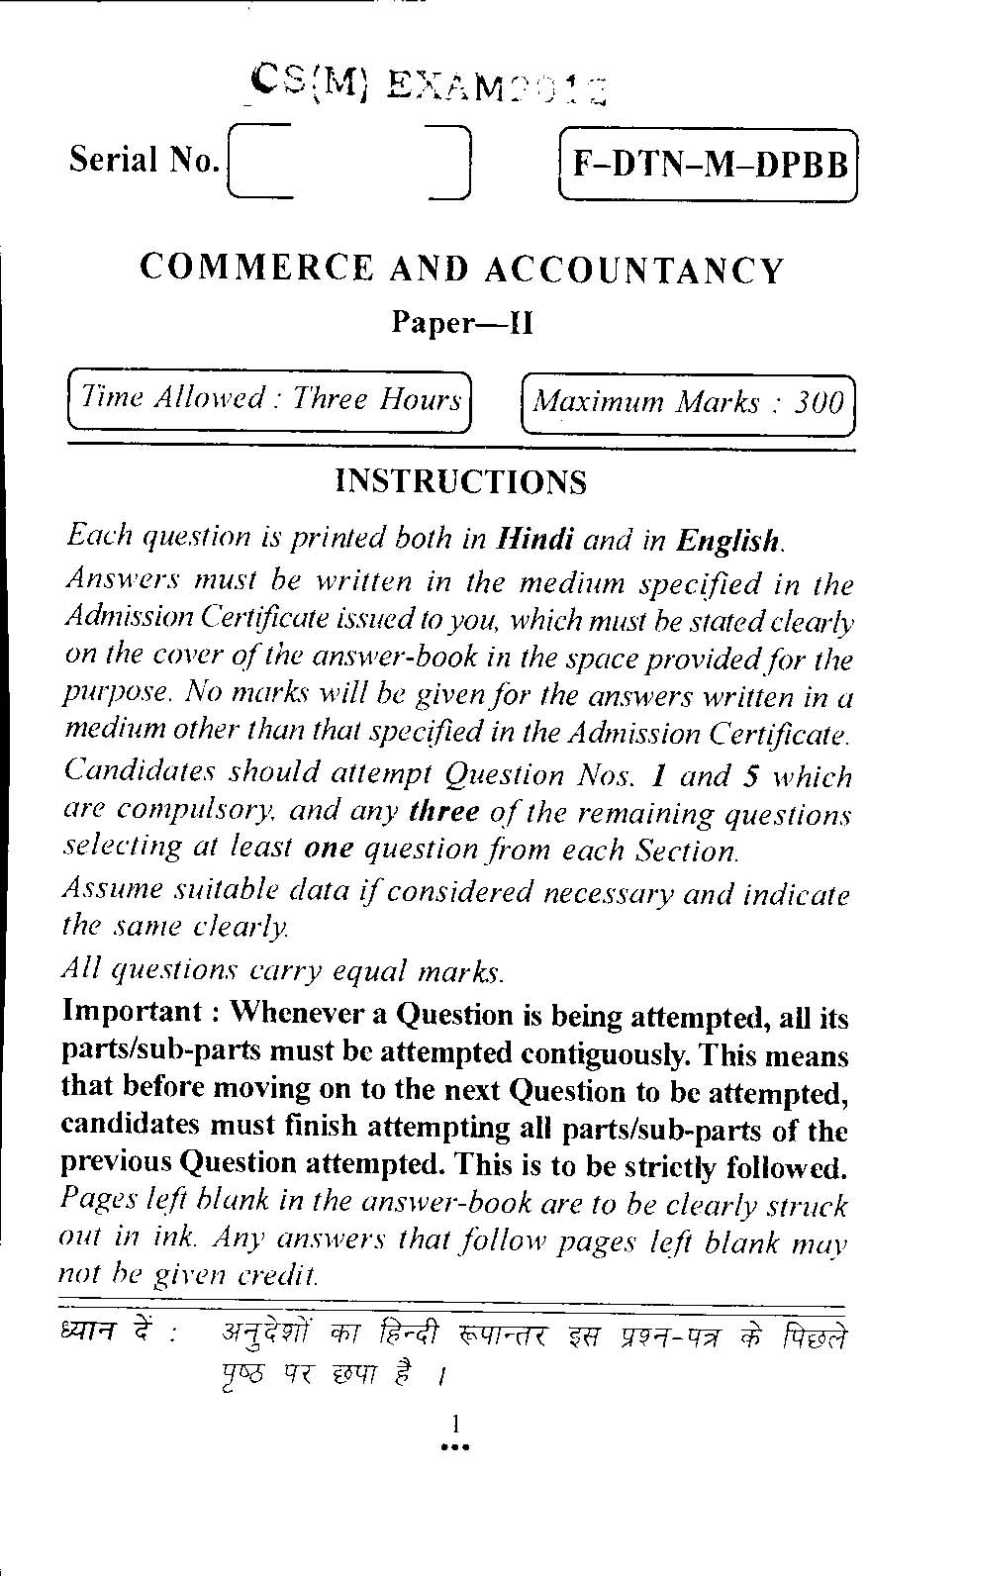 012 American Essay Civil Services Examination Commerce And Accountancy Paper Ii Previous Years Que Striking Dream Scholarship Native Titles Style Full